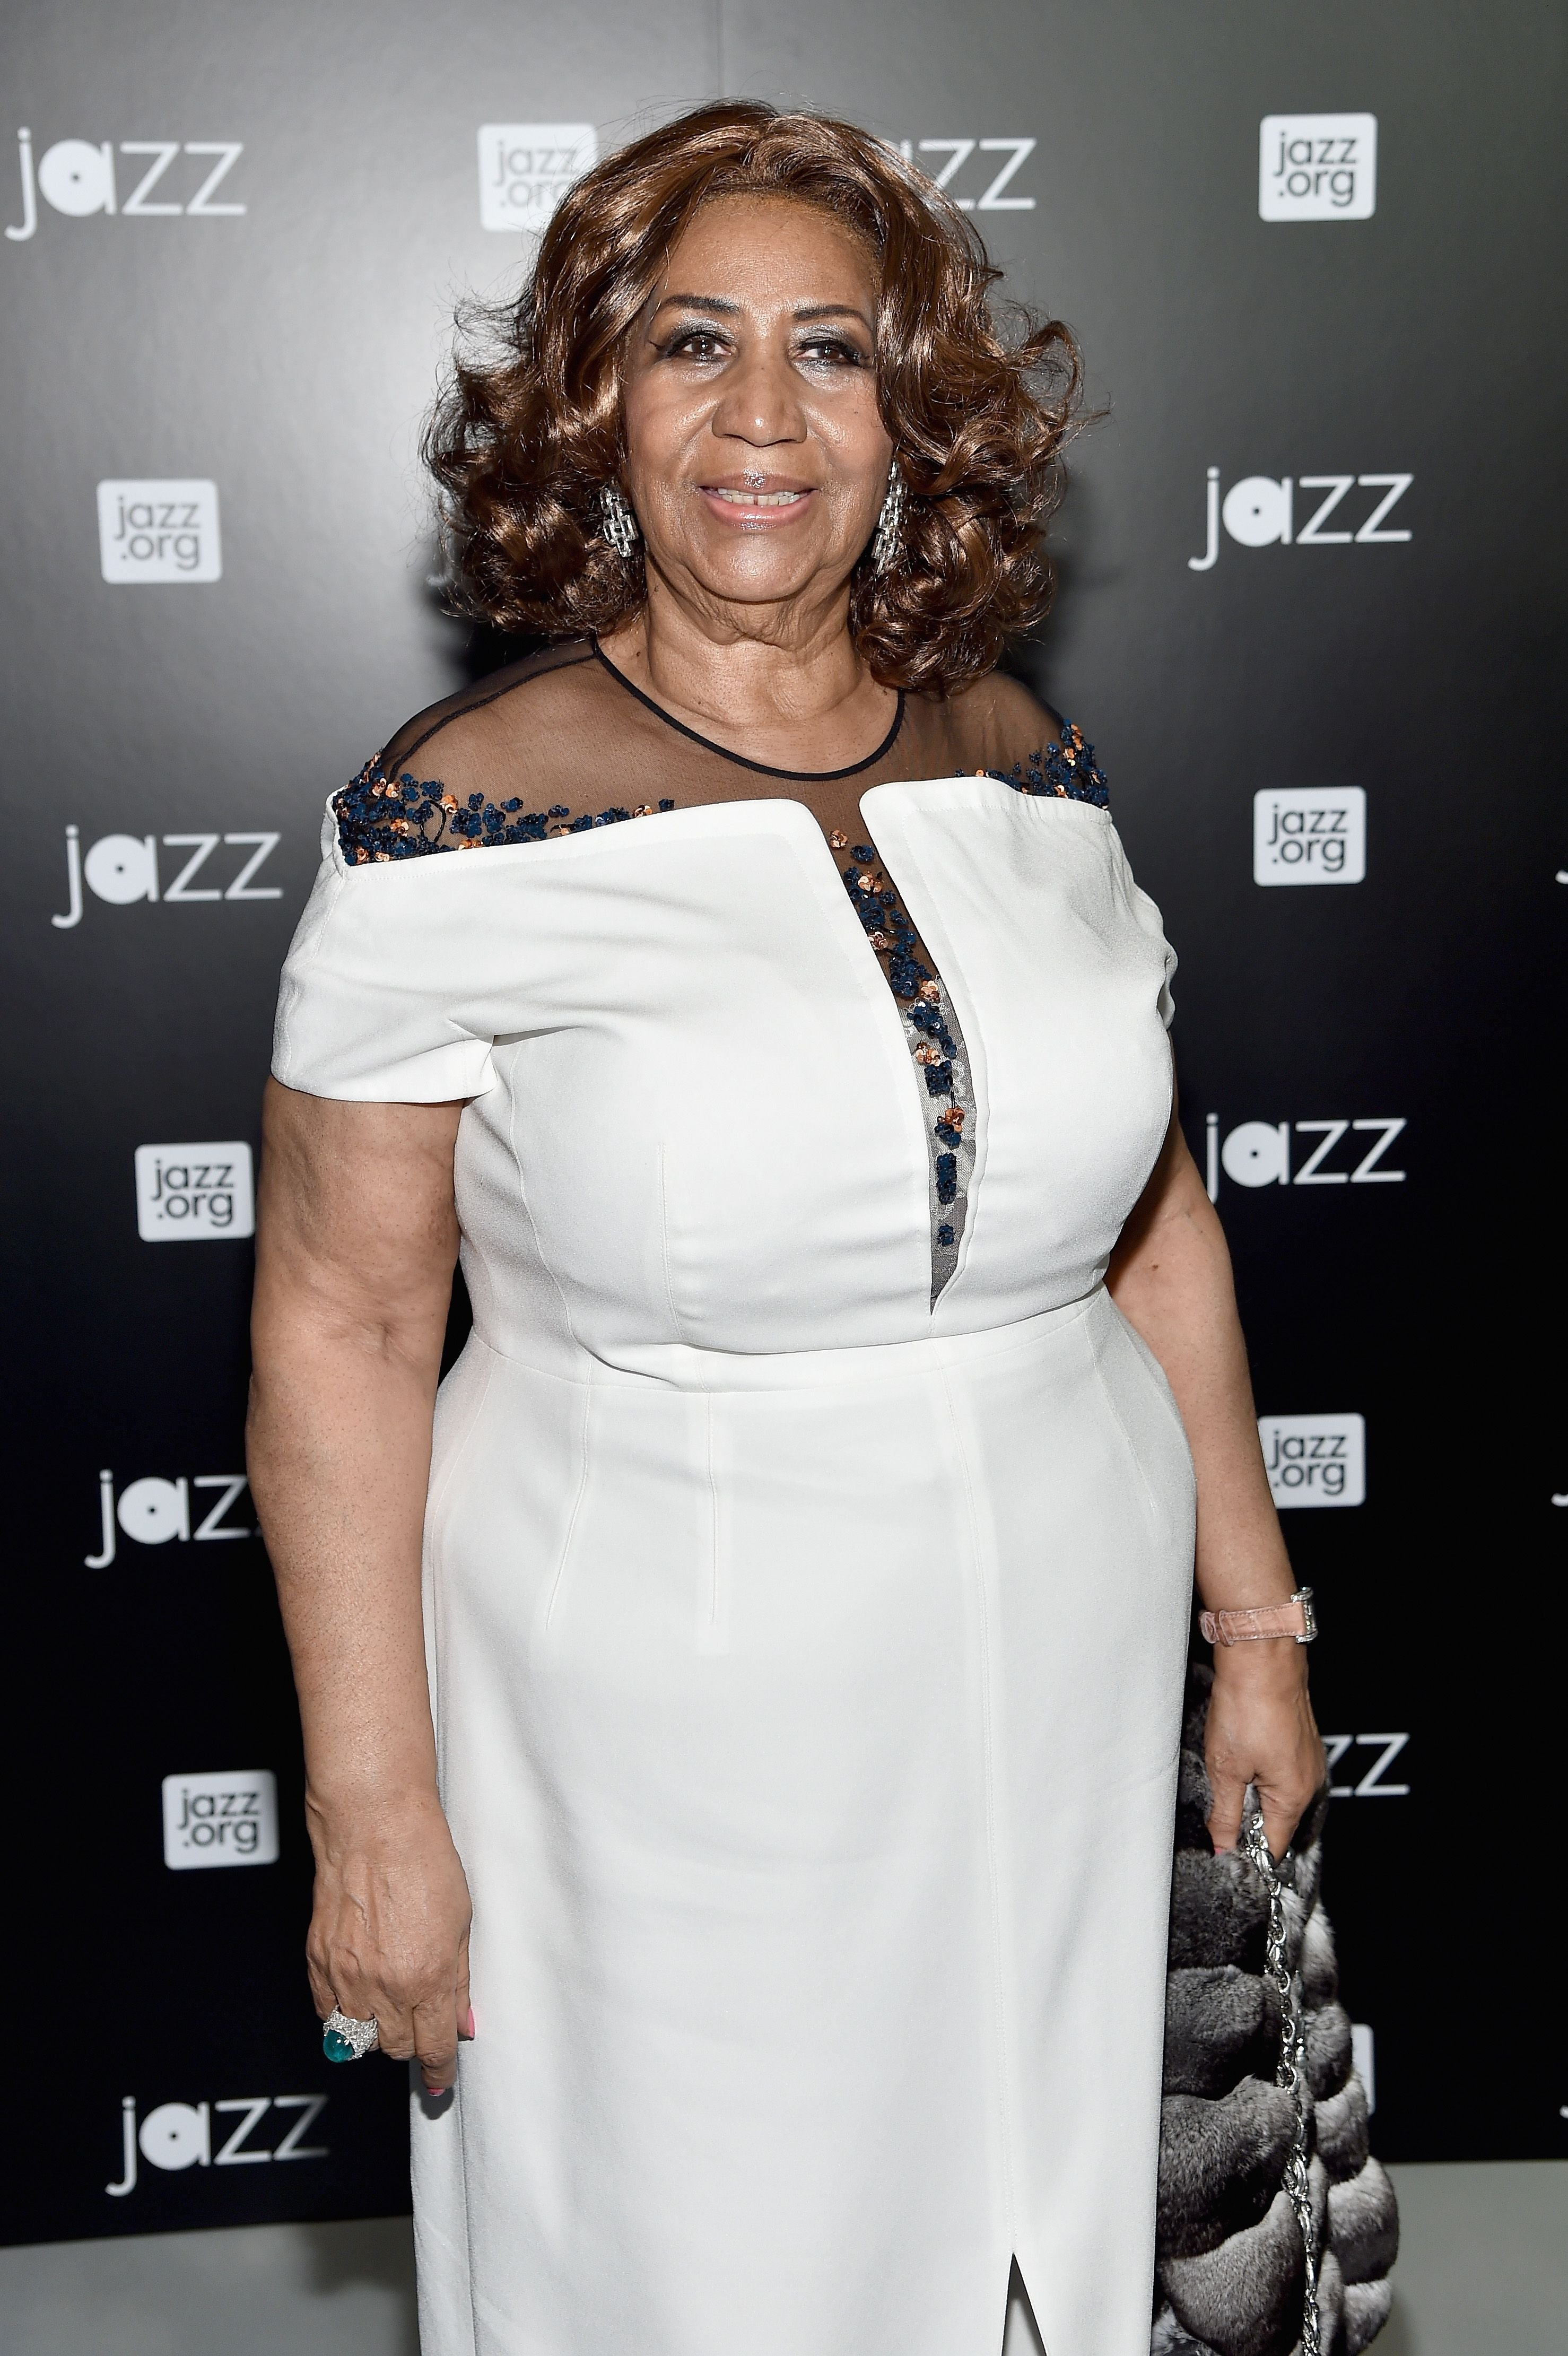 Late musician Aretha Franklin at the opening of the Mica and Ahmet Ertegun Atrium at Jazz at Lincoln Center on December 17, 2015   Photo   Getty Images